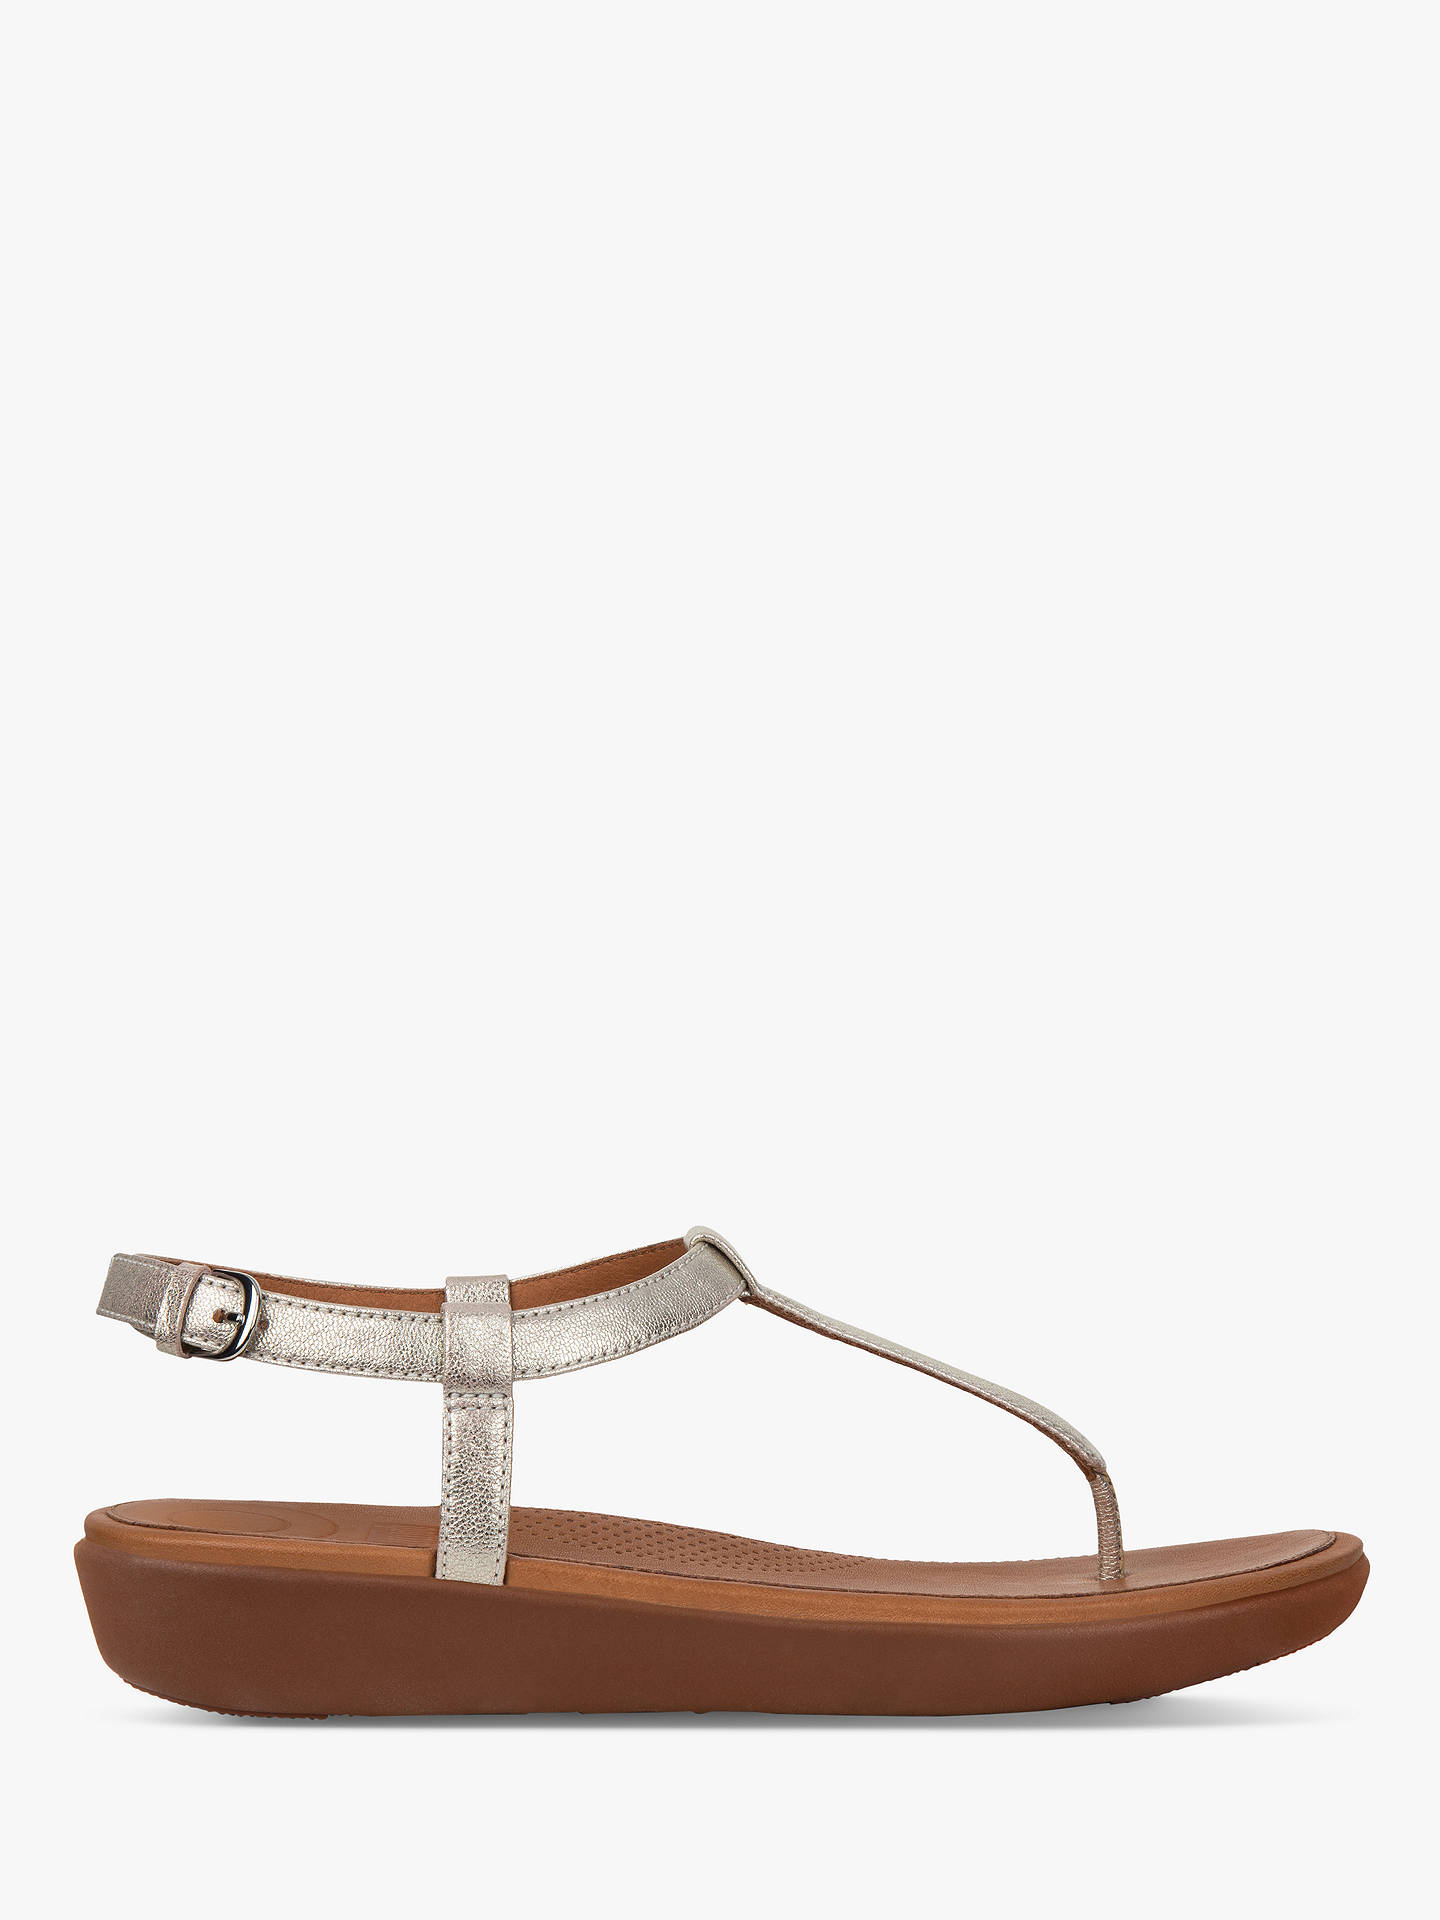 b6252e11cc79 FitFlop Tia Toe Post Sandals at John Lewis   Partners